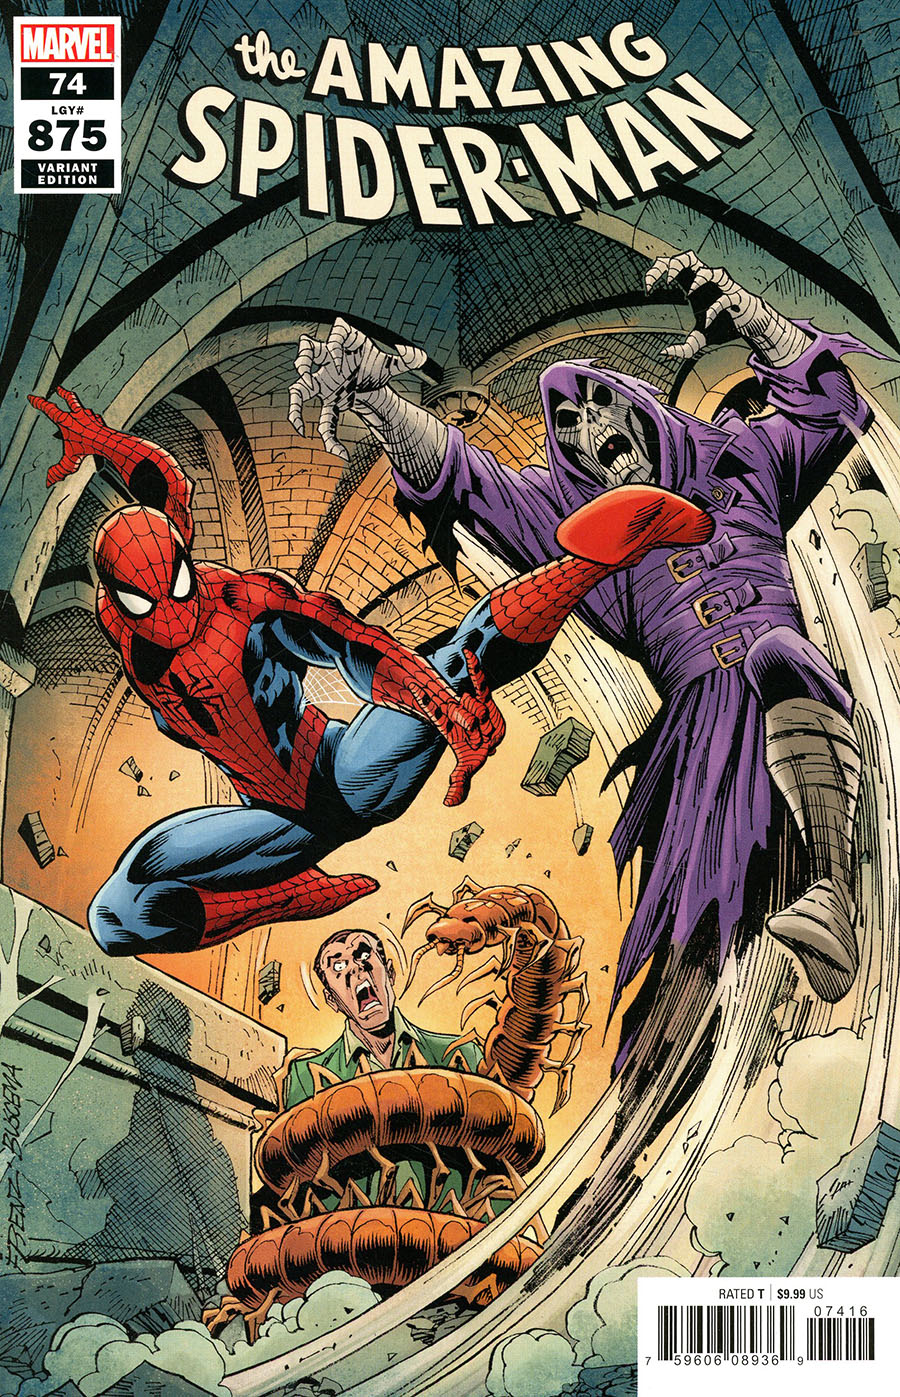 Amazing Spider-Man Vol 5 #74 Cover H Variant Ron Frenz Cover (#875)